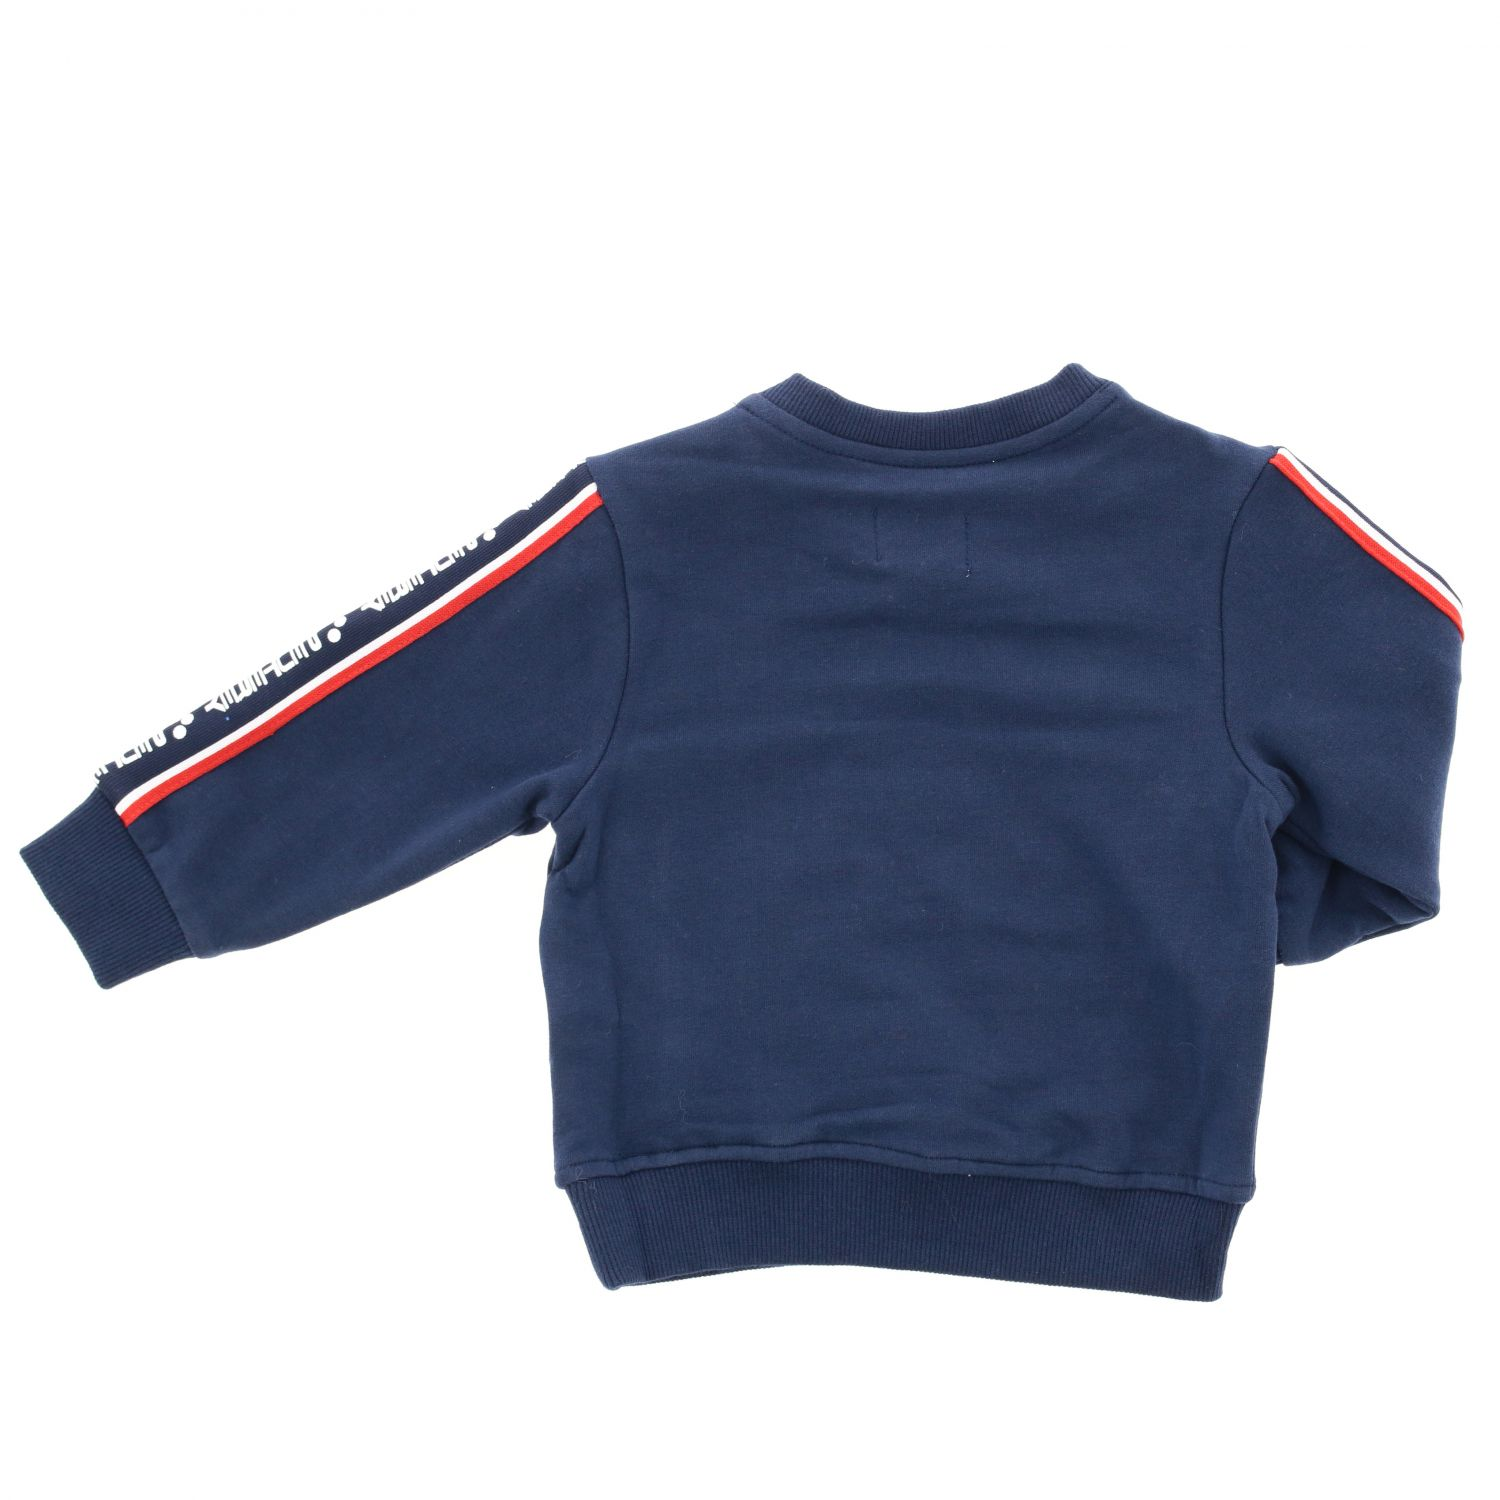 Pullover kinder Peuterey navy 2